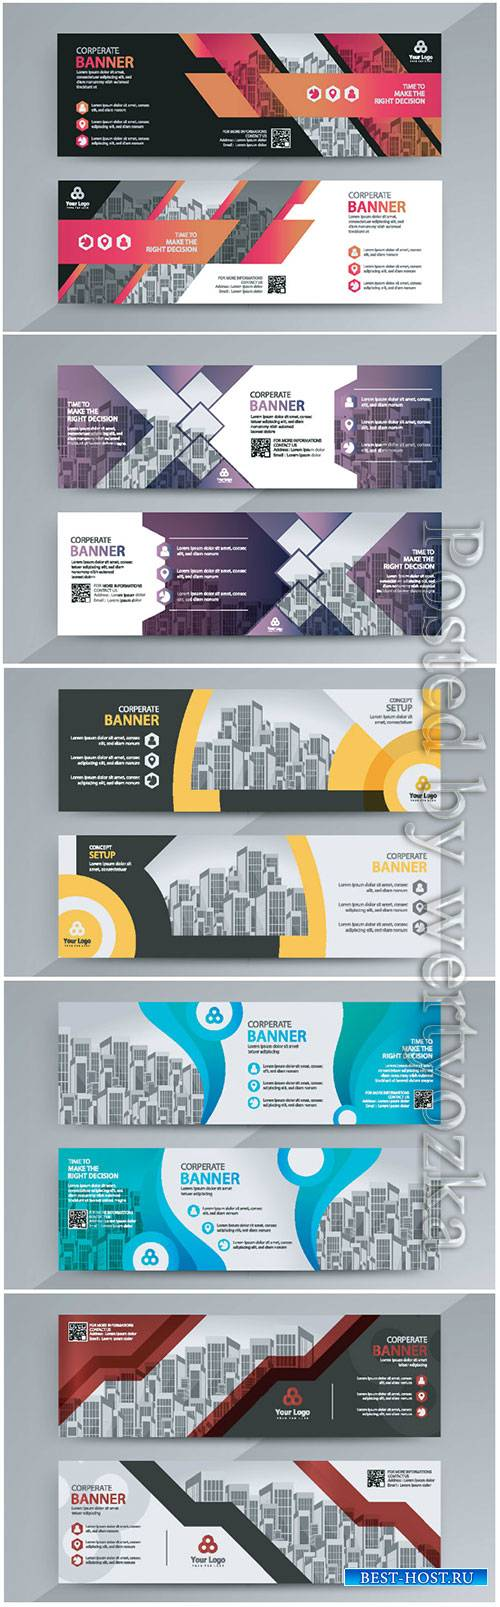 Horizontal advertising business banner layout template